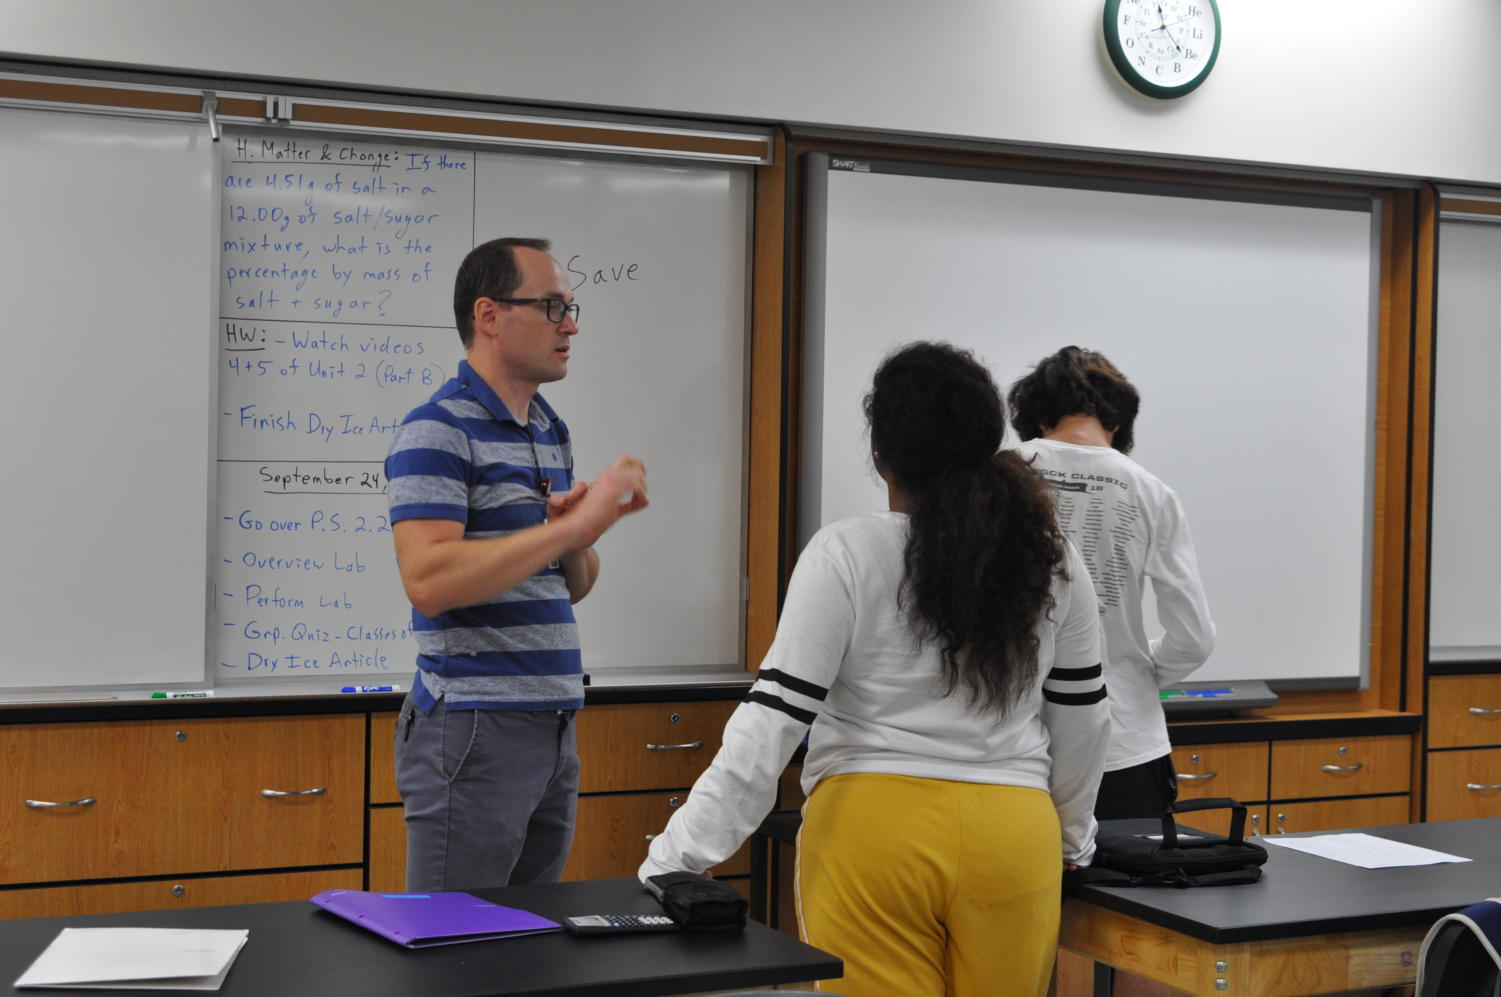 Science teacher Sergey Zinovchik chats with students during class.